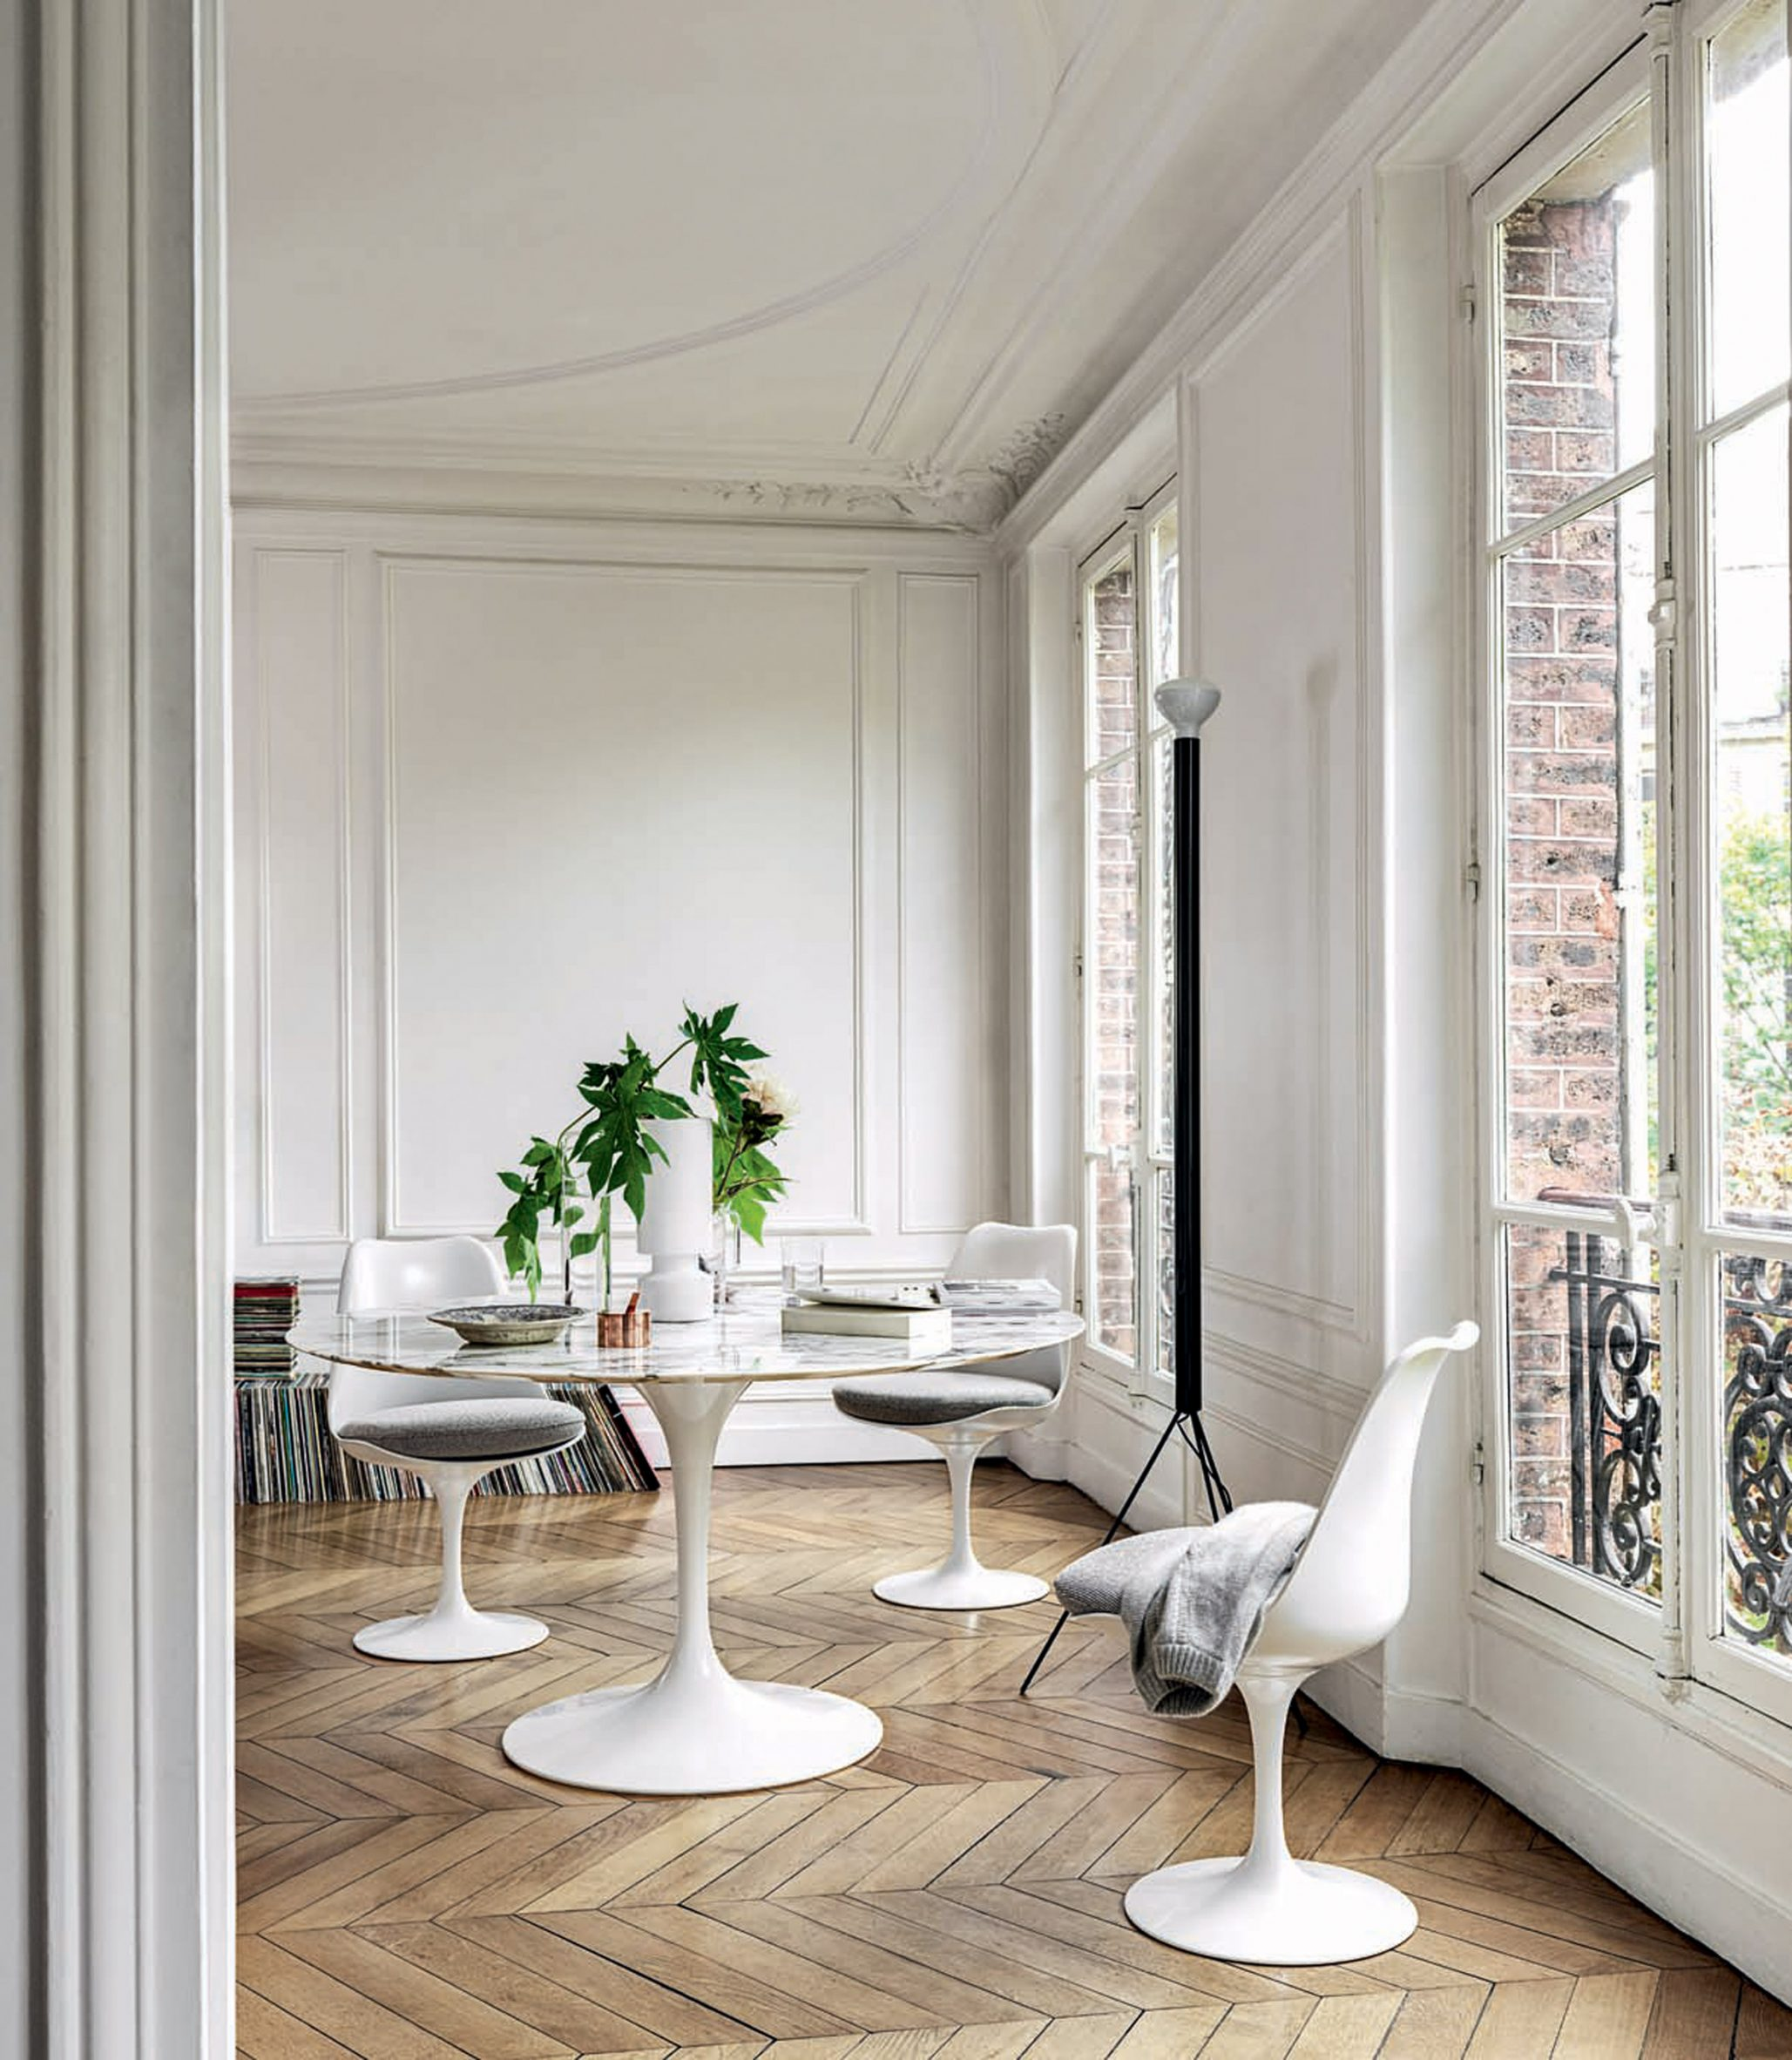 A modern white dining table set in white plastic with pedestal bases in a classic home interior